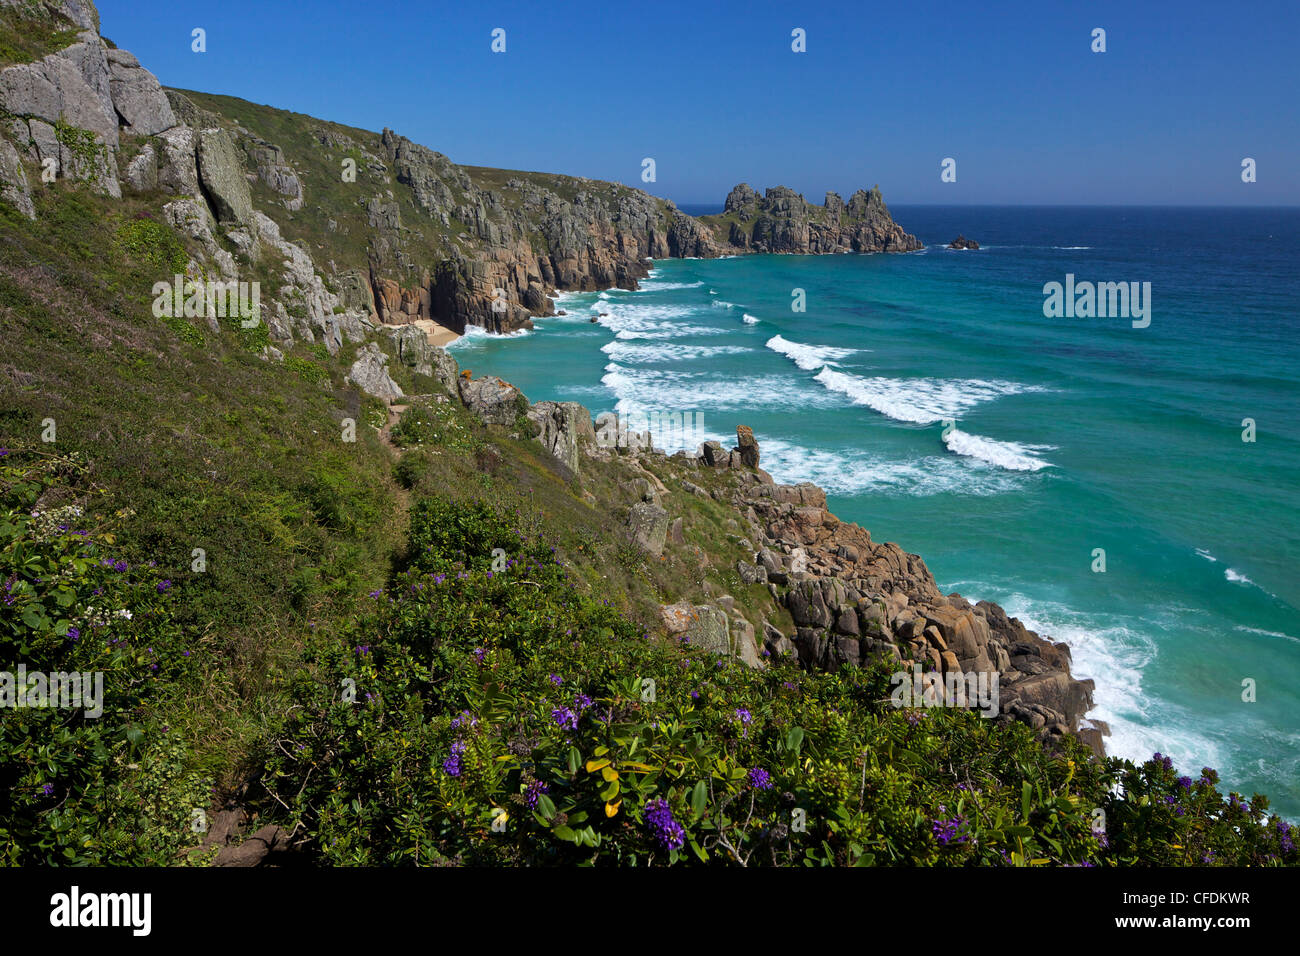 Surf and turquoise sea at Pednvounder beach, Lands End Peninsula, West Penwith, Cornwall, England, UK - Stock Image